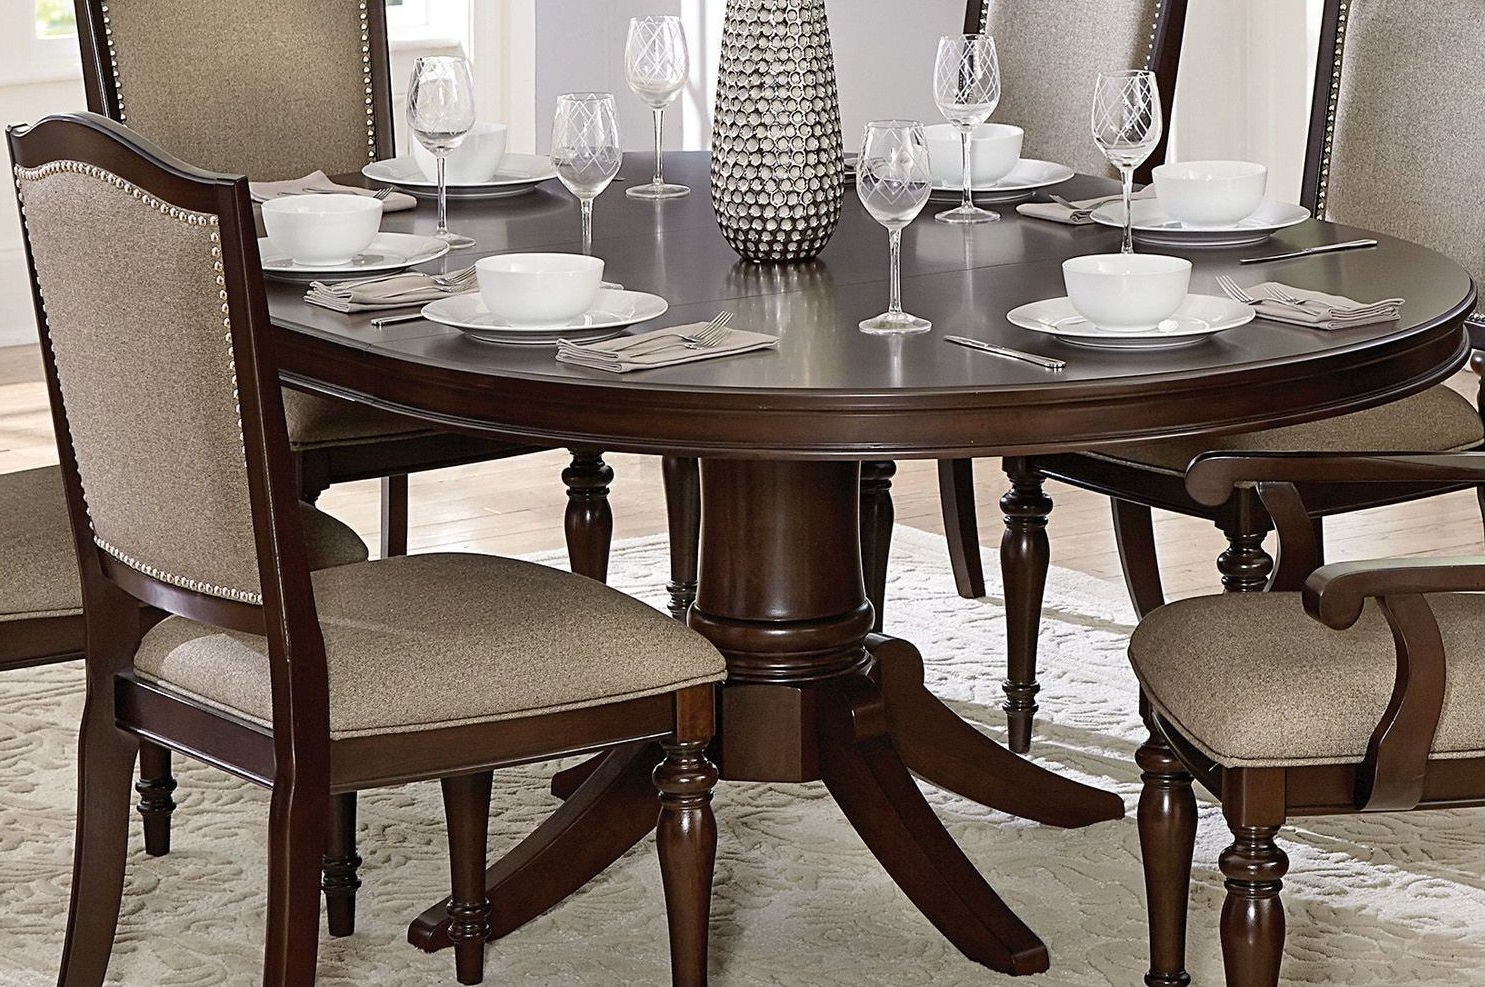 Latest Bale Rustic Grey Dining Tables Pertaining To Homelegance Marston Brown Pedestal Oval Extendable Dining Room Set (View 12 of 25)